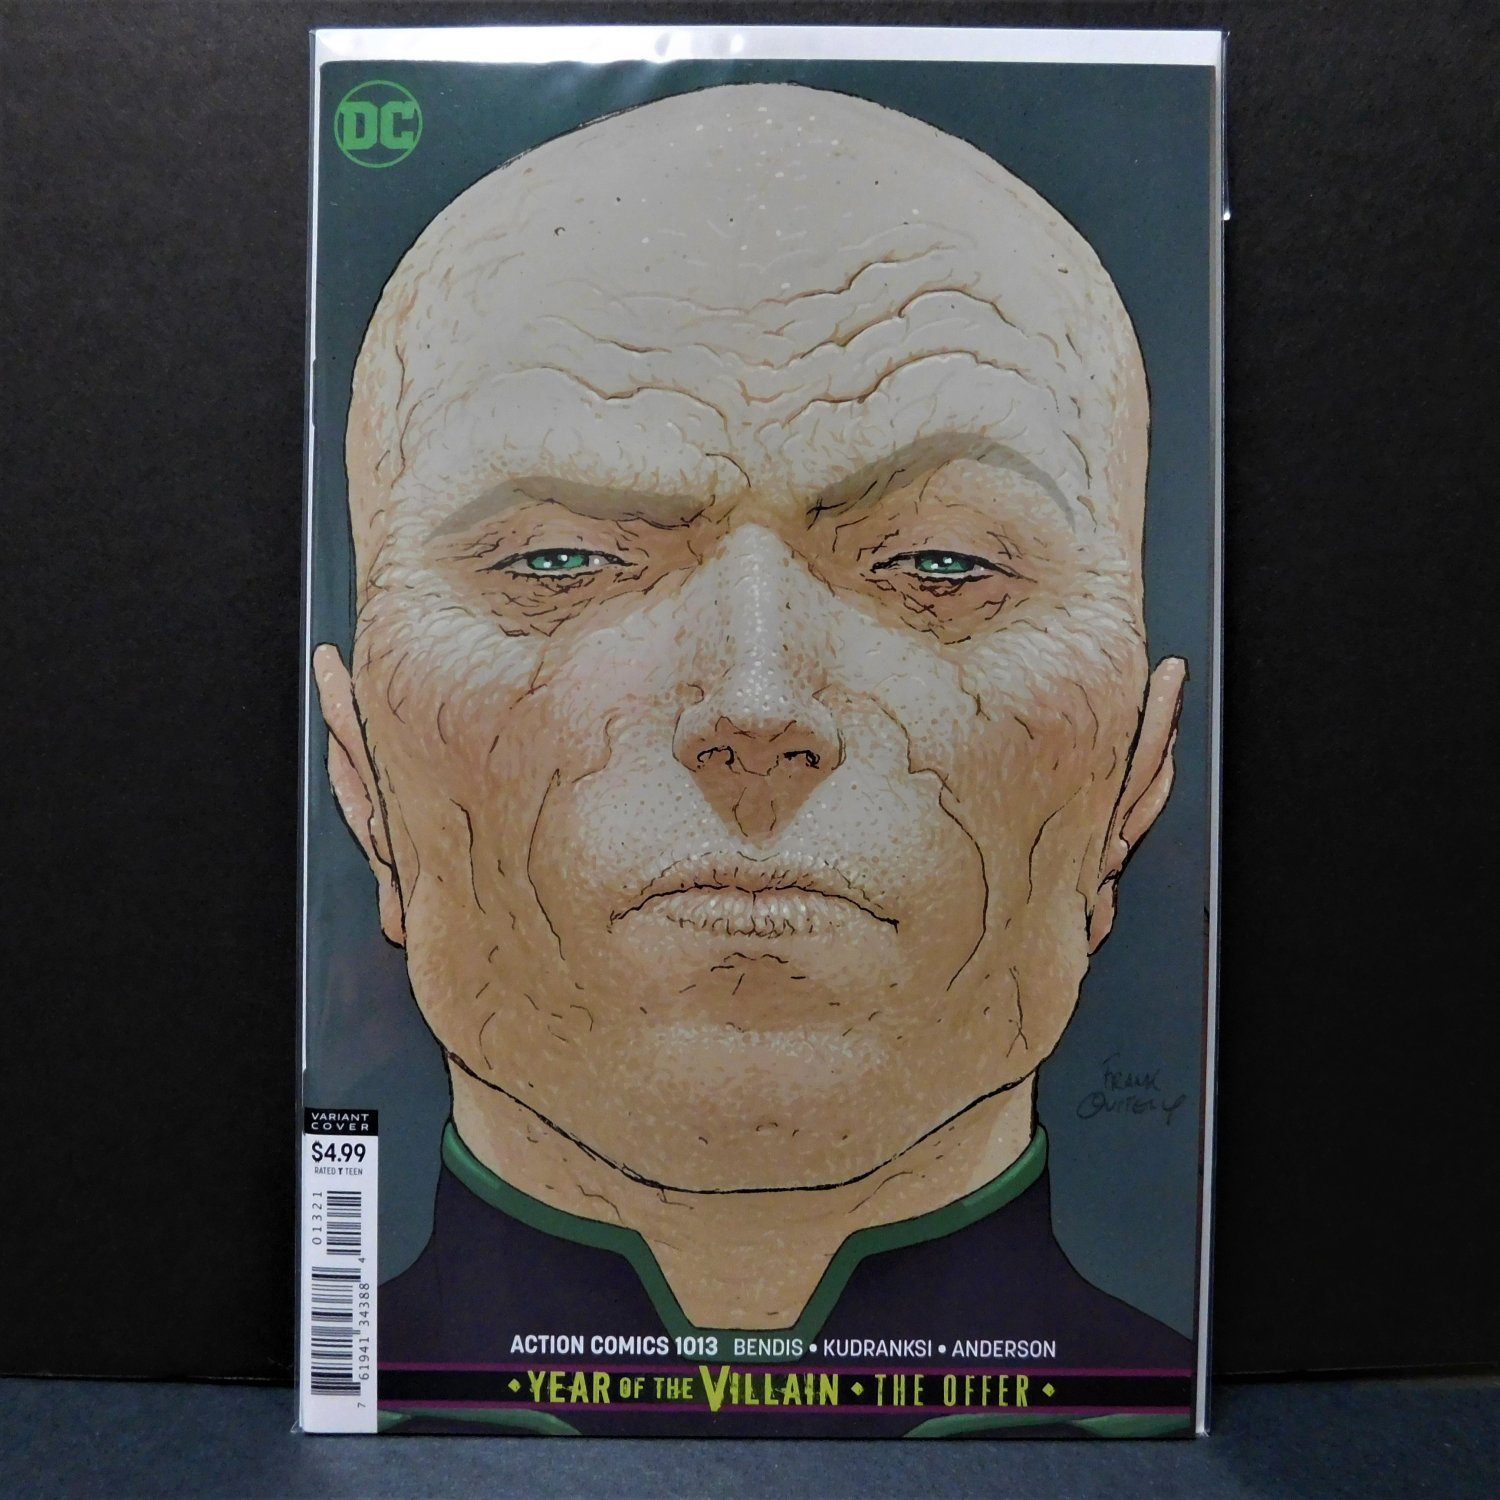 Superman ACTION COMICS Comic Book #1013 - DC Comics Year of the Villain - Quitely Variant Cover B